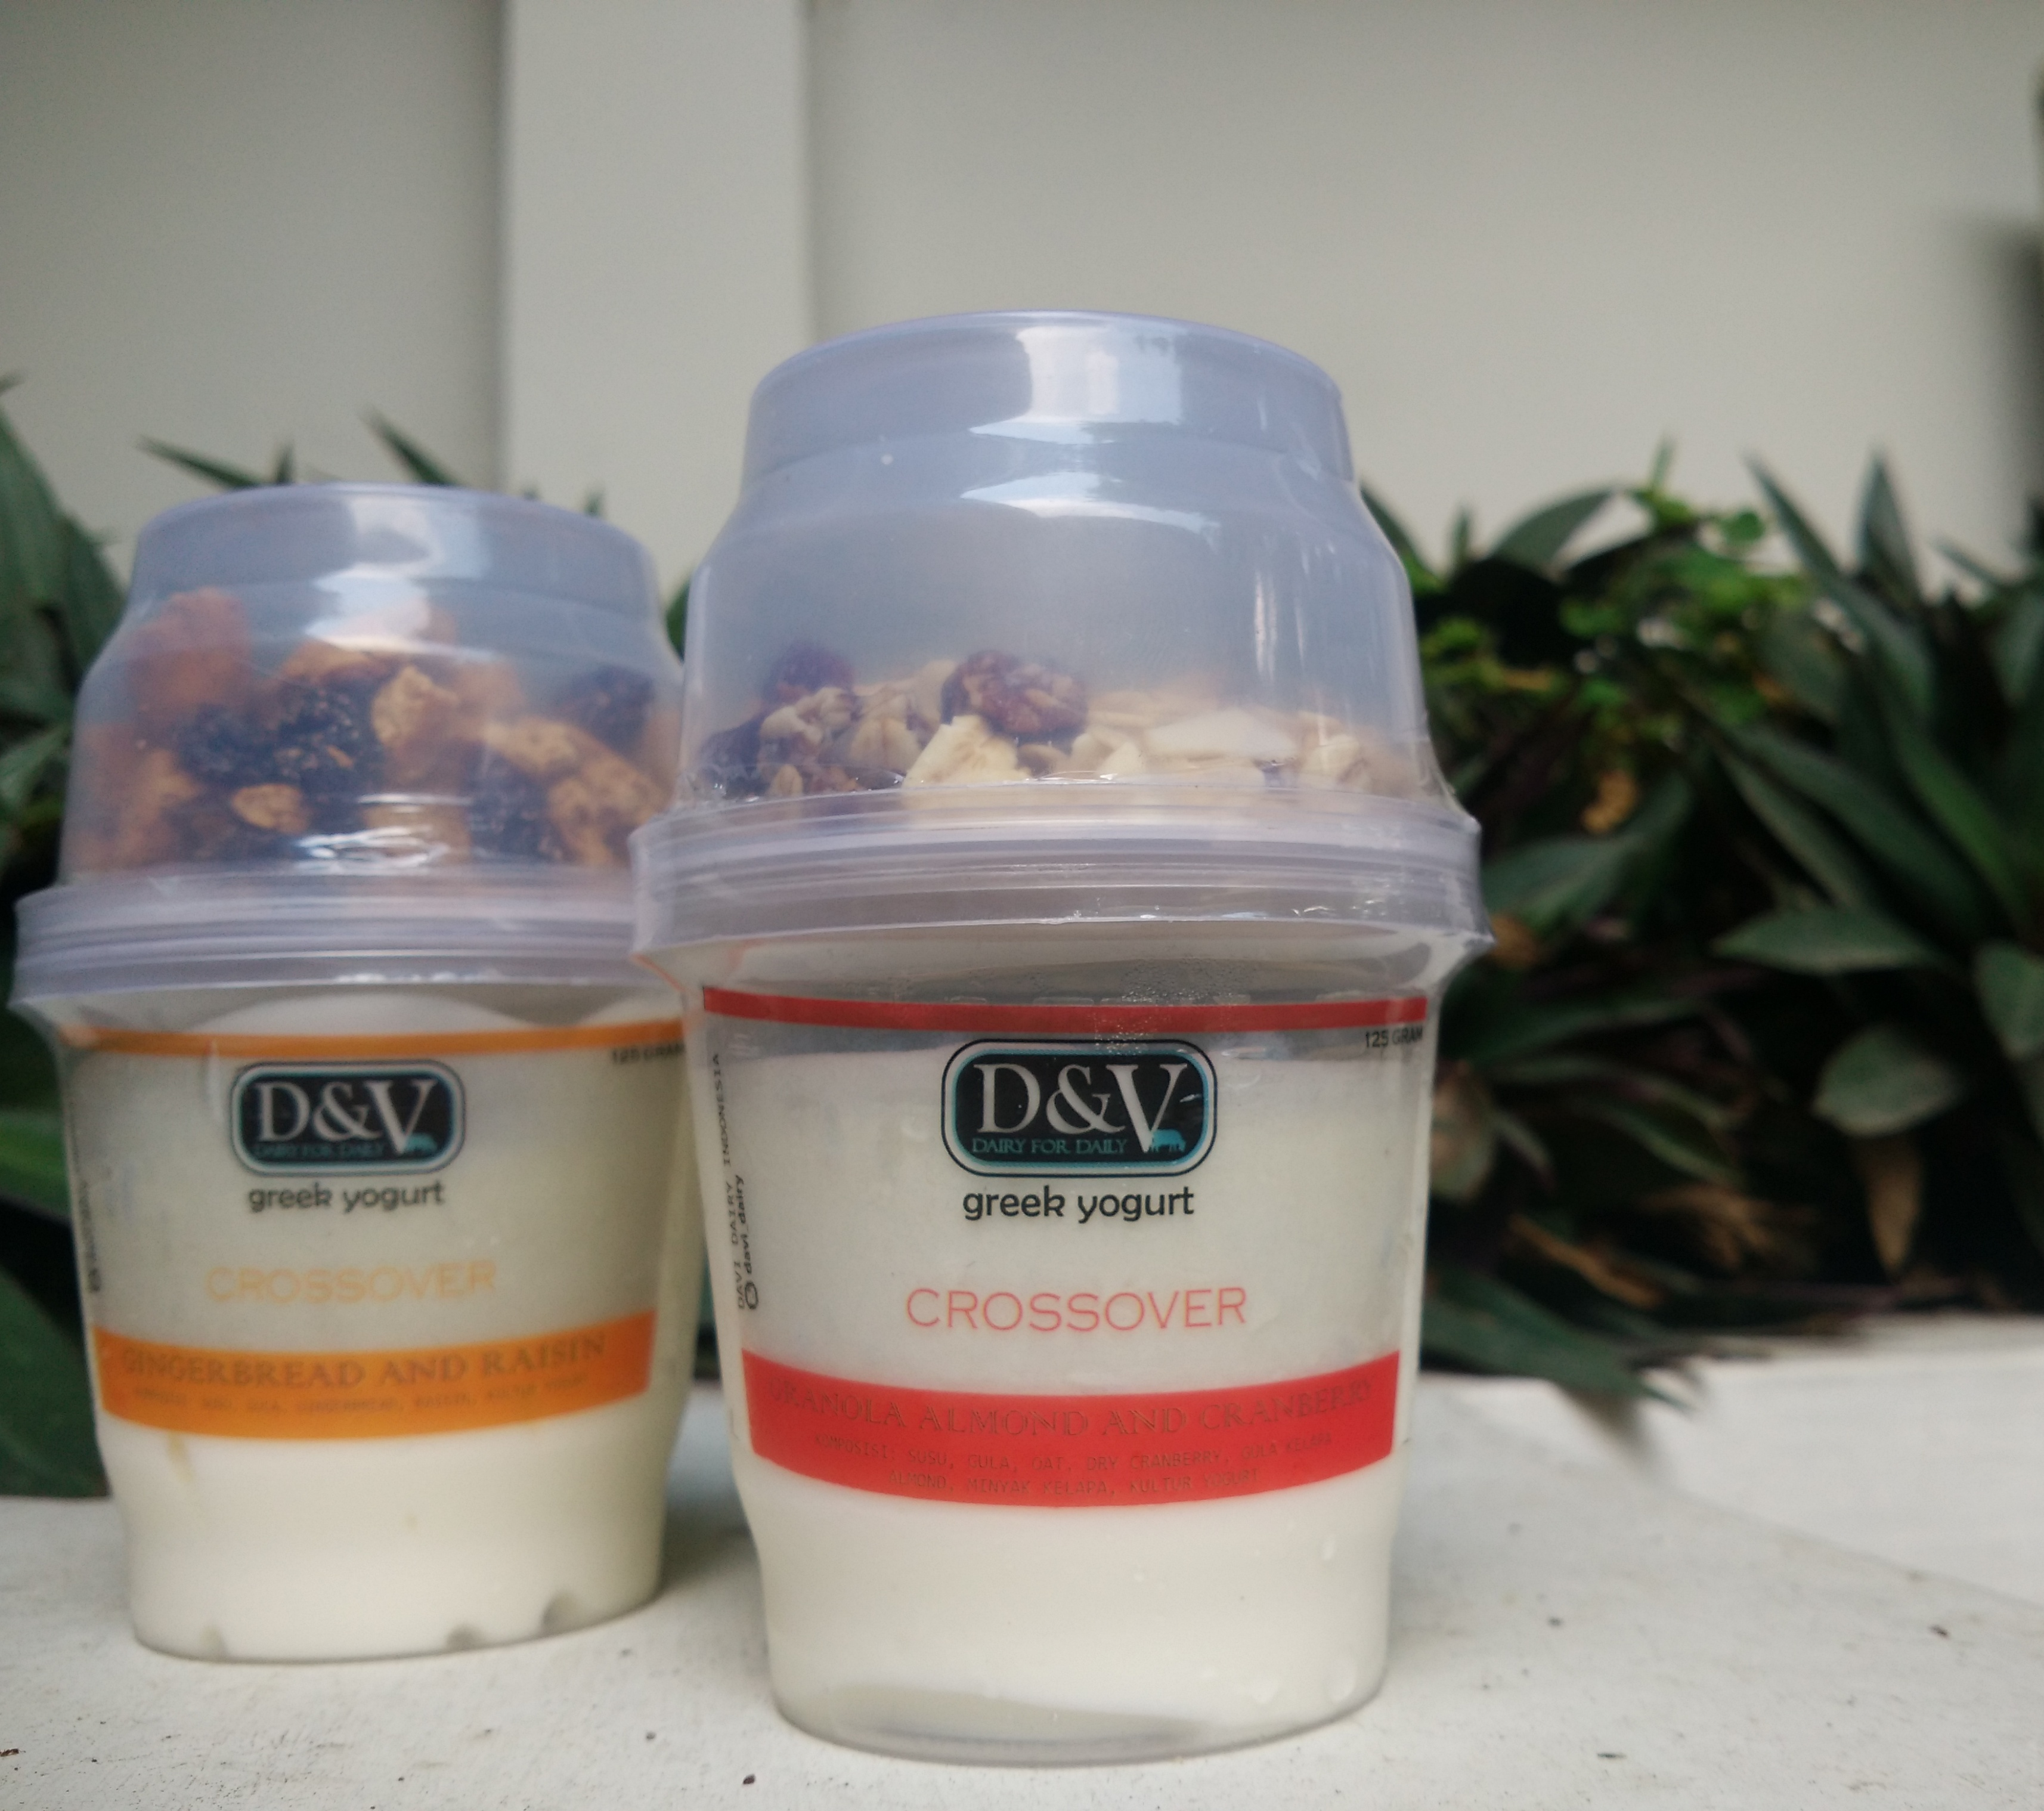 D&V Greek Yoghurt Crossover